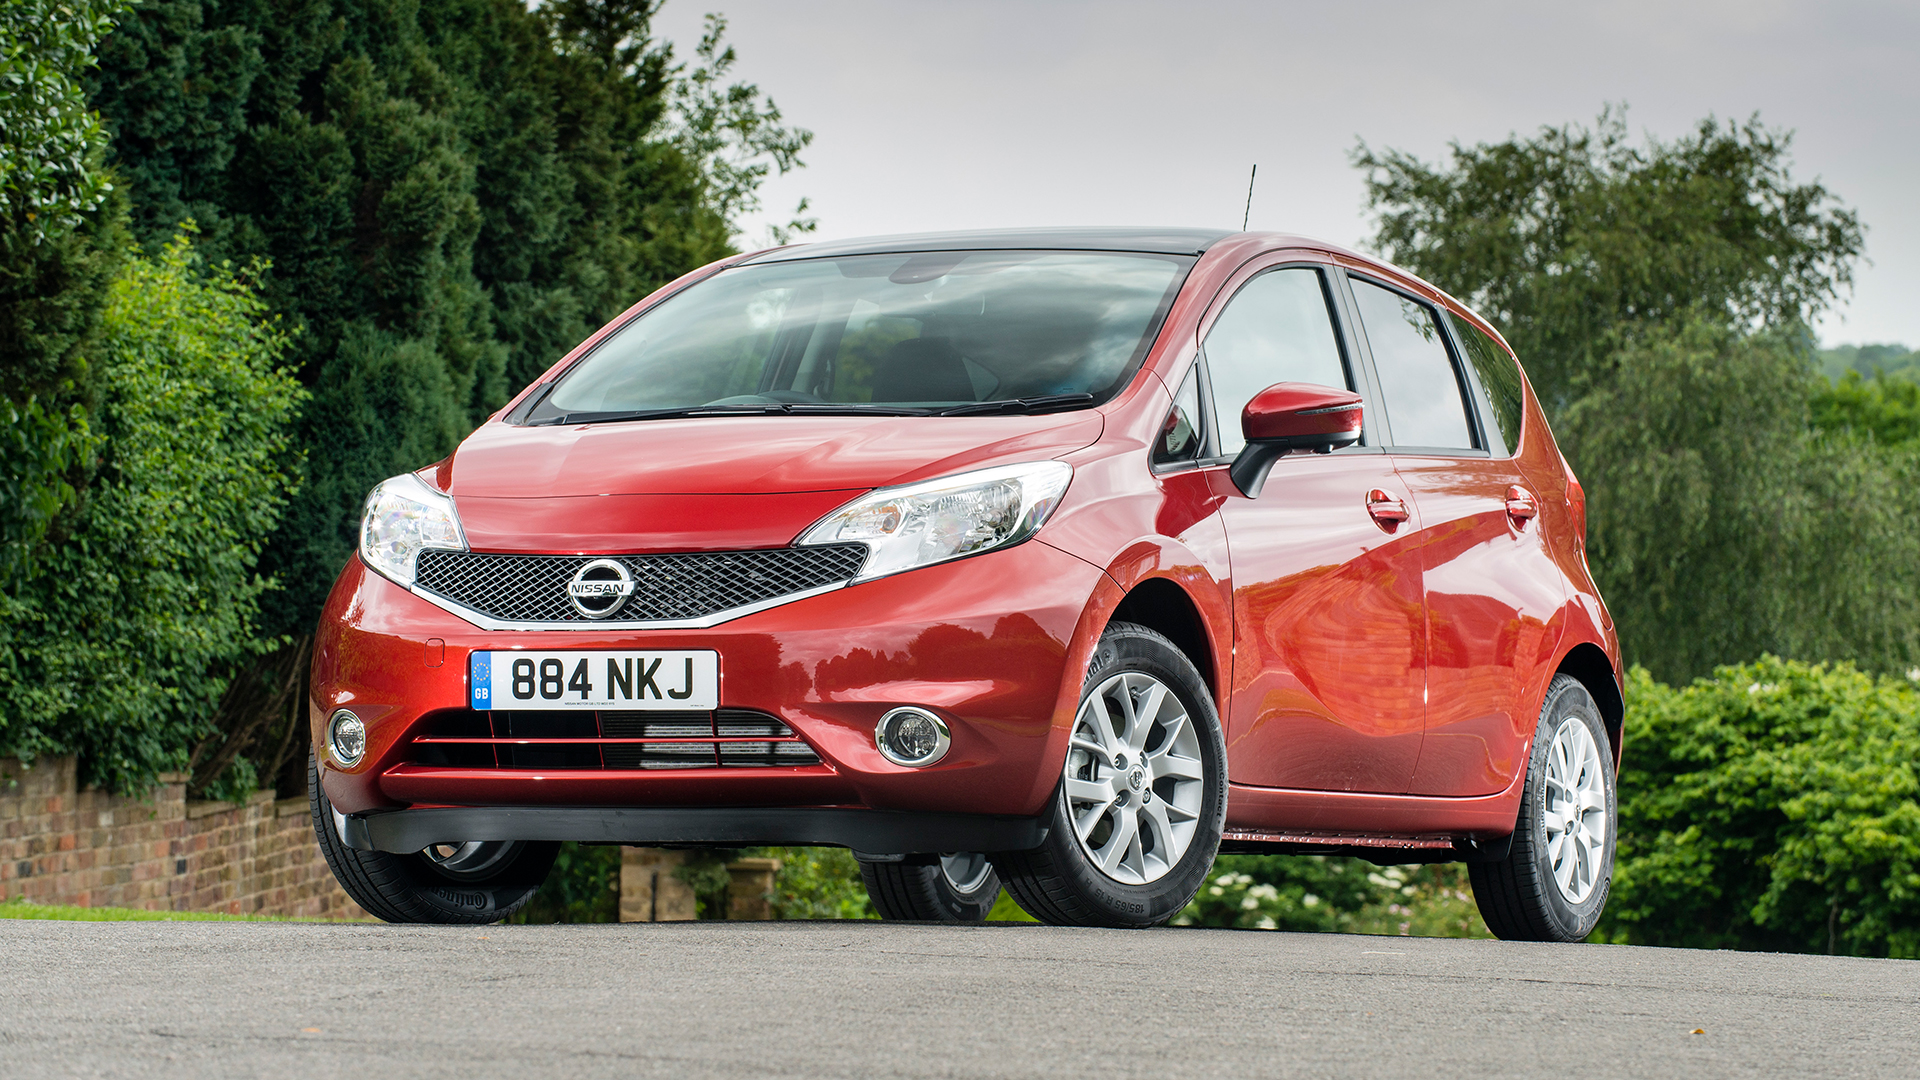 Used Nissan Note SE Cars for Sale on Auto Trader UK